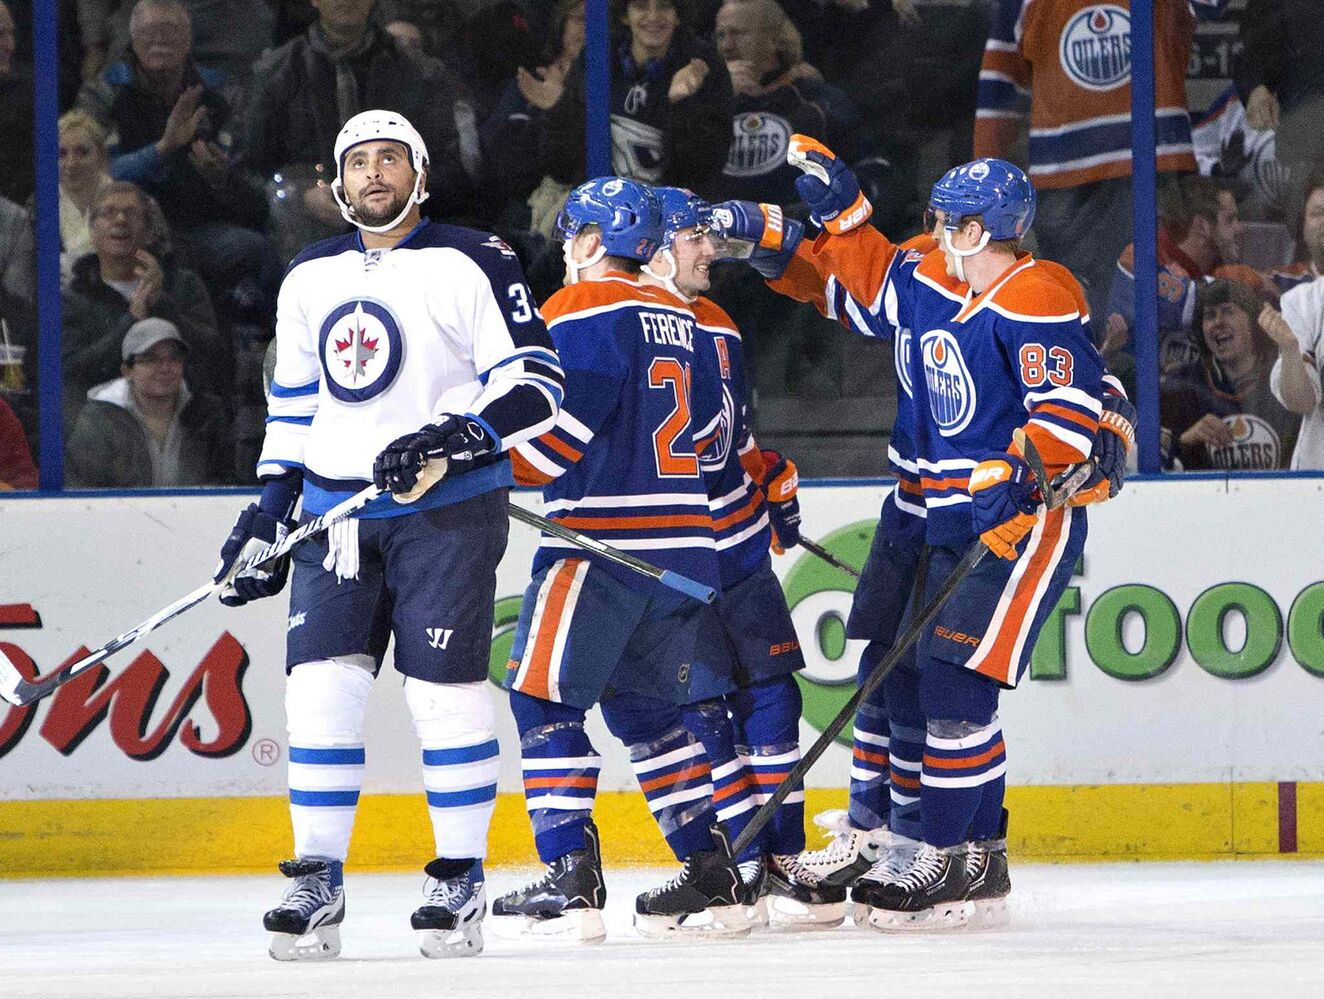 Winnipeg Jets' Dustin Byfuglien (33) looks on as Edmonton Oilers' Andrew Ference (21), Jordan Eberle (14) and Ales Hemsky (83) celebrate a goal during first period NHL hockey action in Edmonton on Monday. (Jason Franson / The Canadian Press)